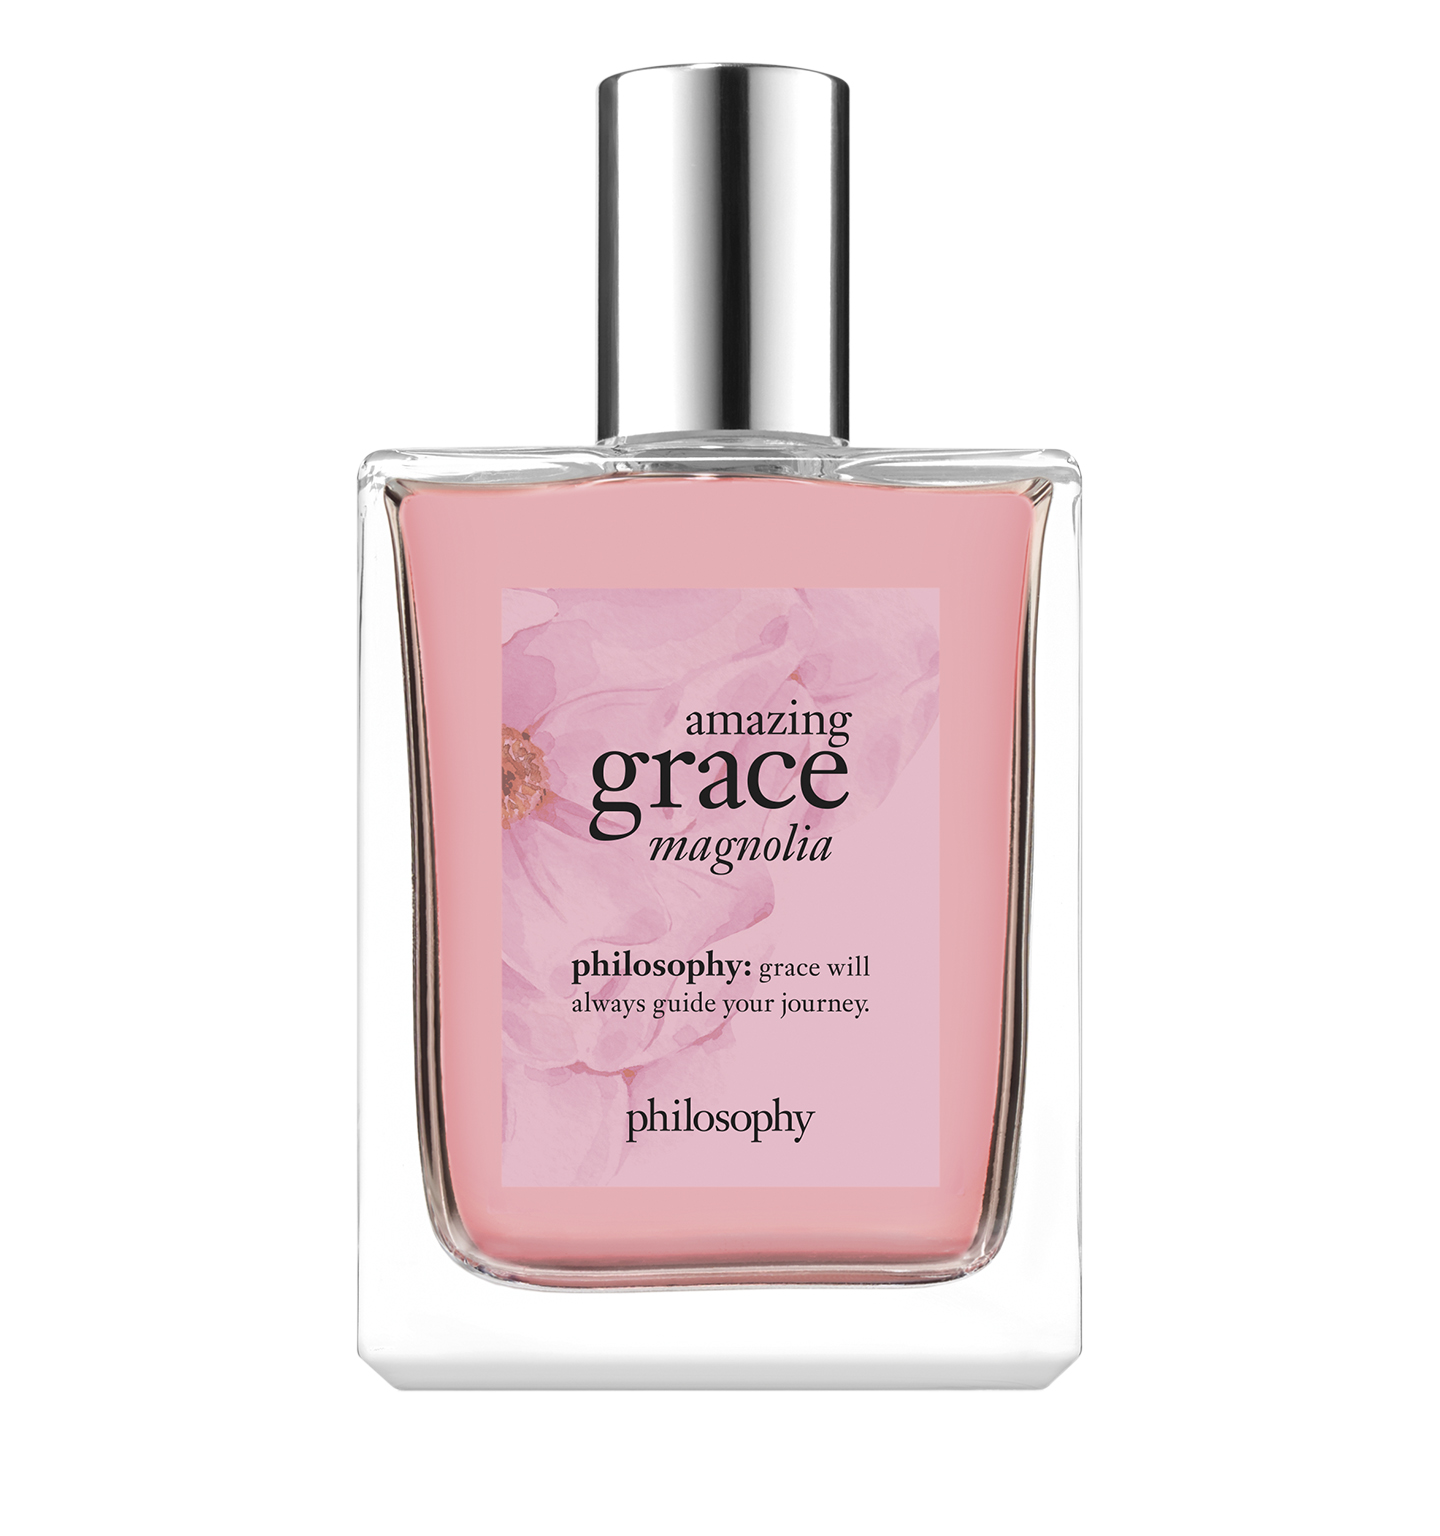 philosophy, amazing grace magnolia spray fragrance